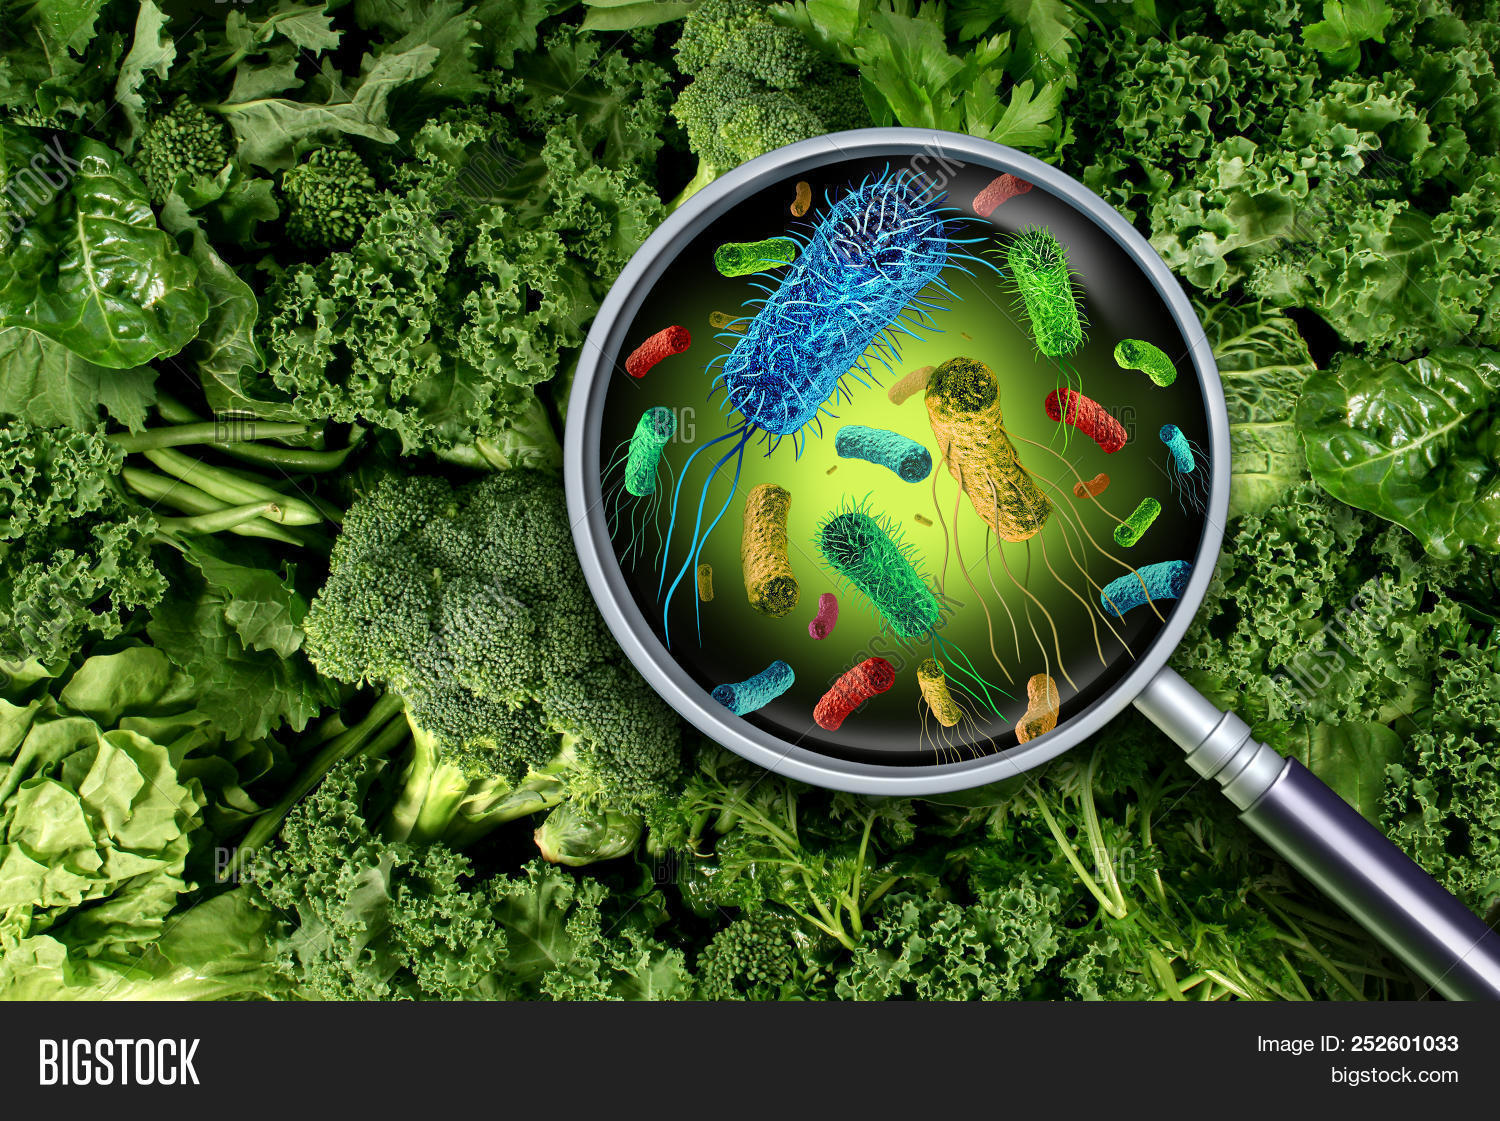 Bacteria Germs On Image Amp Photo Free Trial